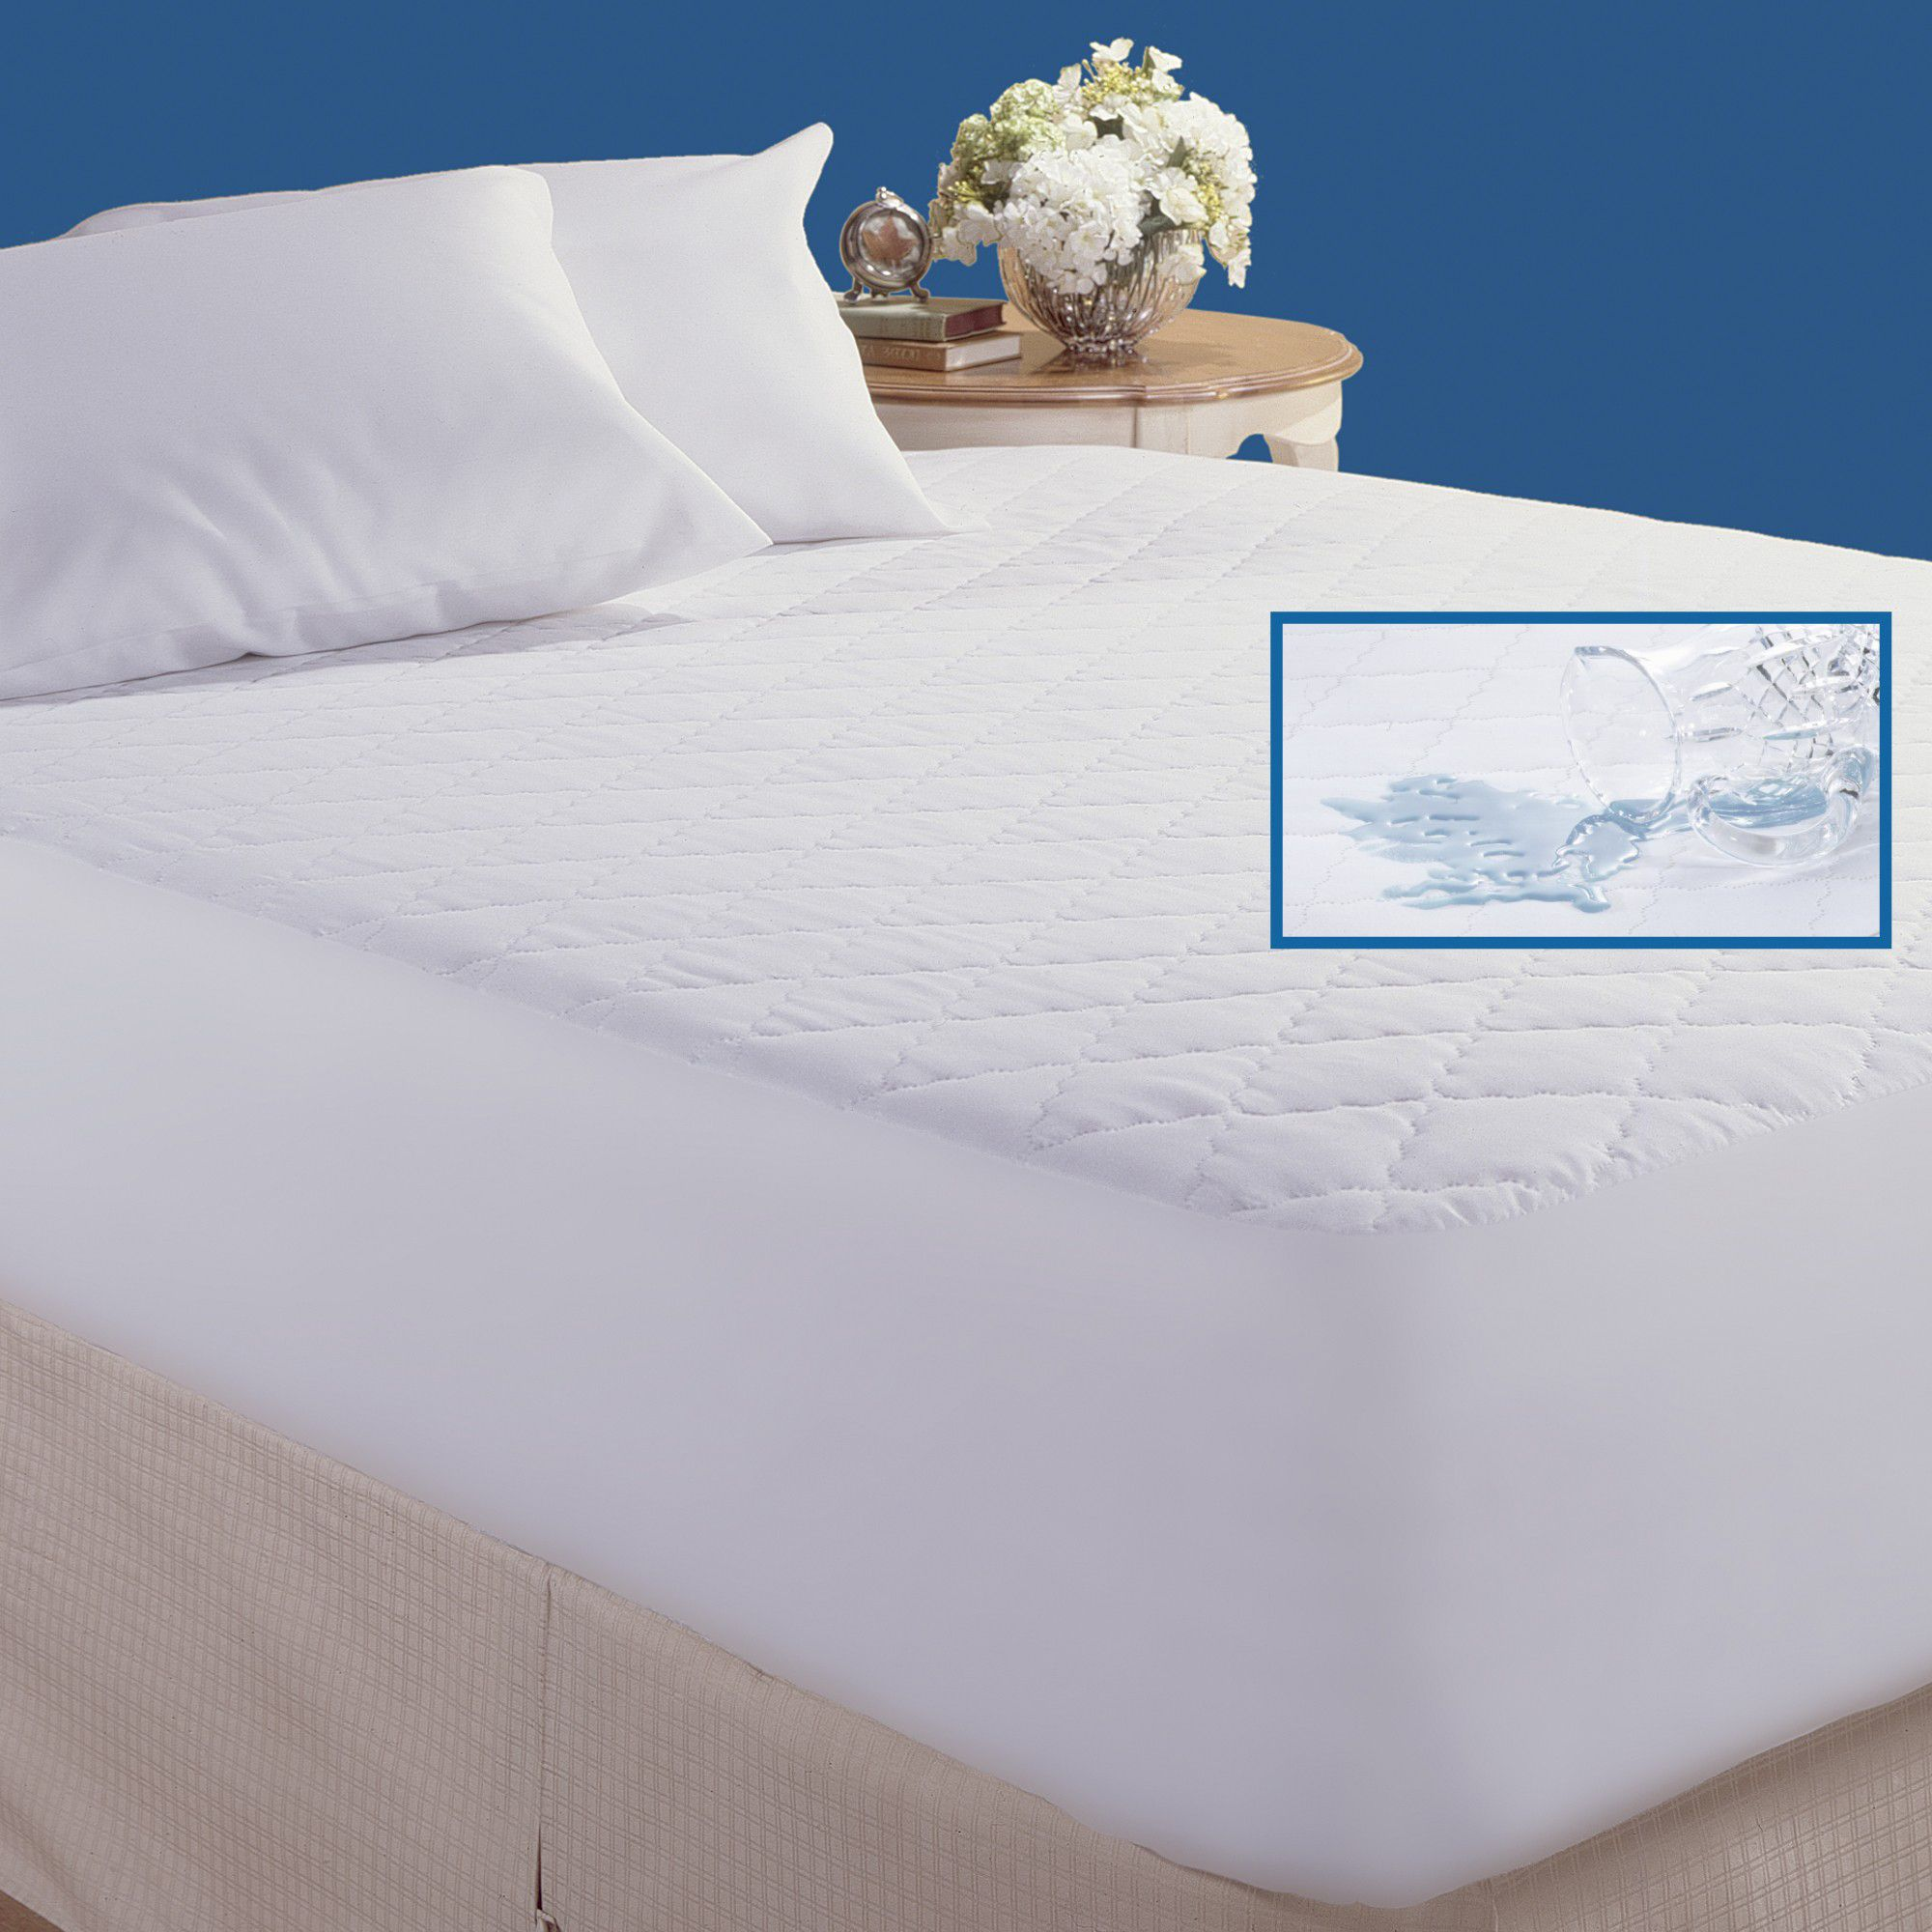 Anatoliatex Waterproof Mattress Protectors Incontinence